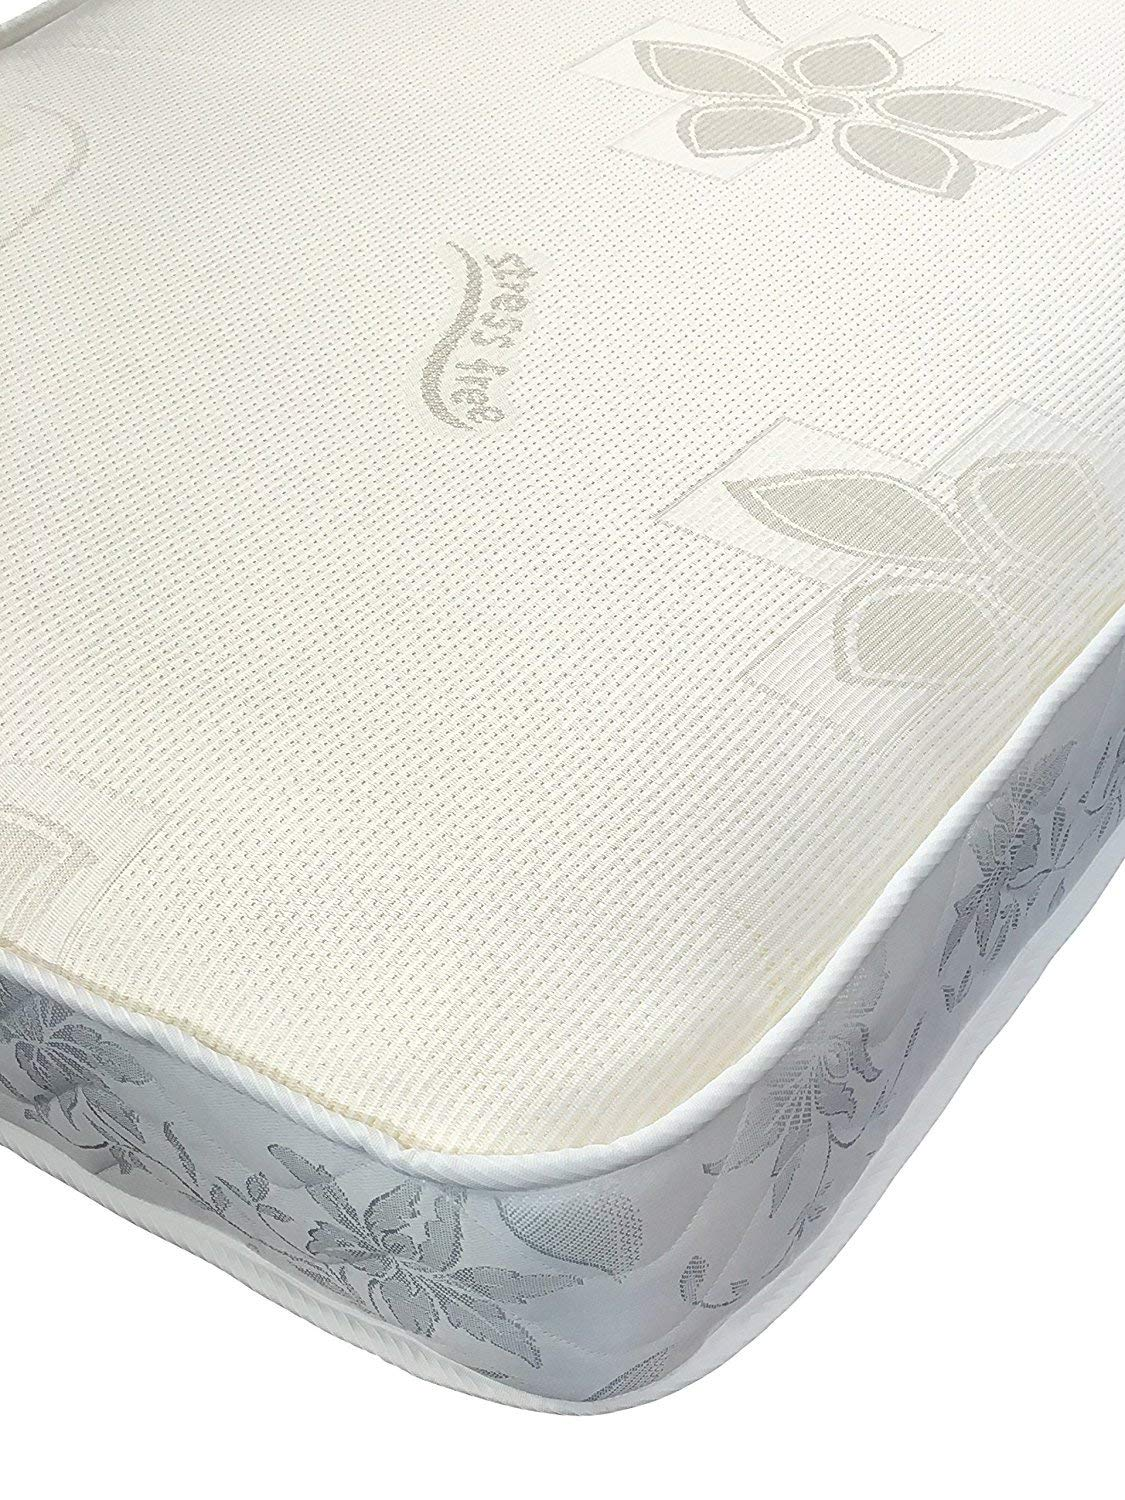 eXtreme Comfort UK ltd 3ft 190 x 90 x 17 (CM) Budget Memory Spring Mattress FBR1106 Single